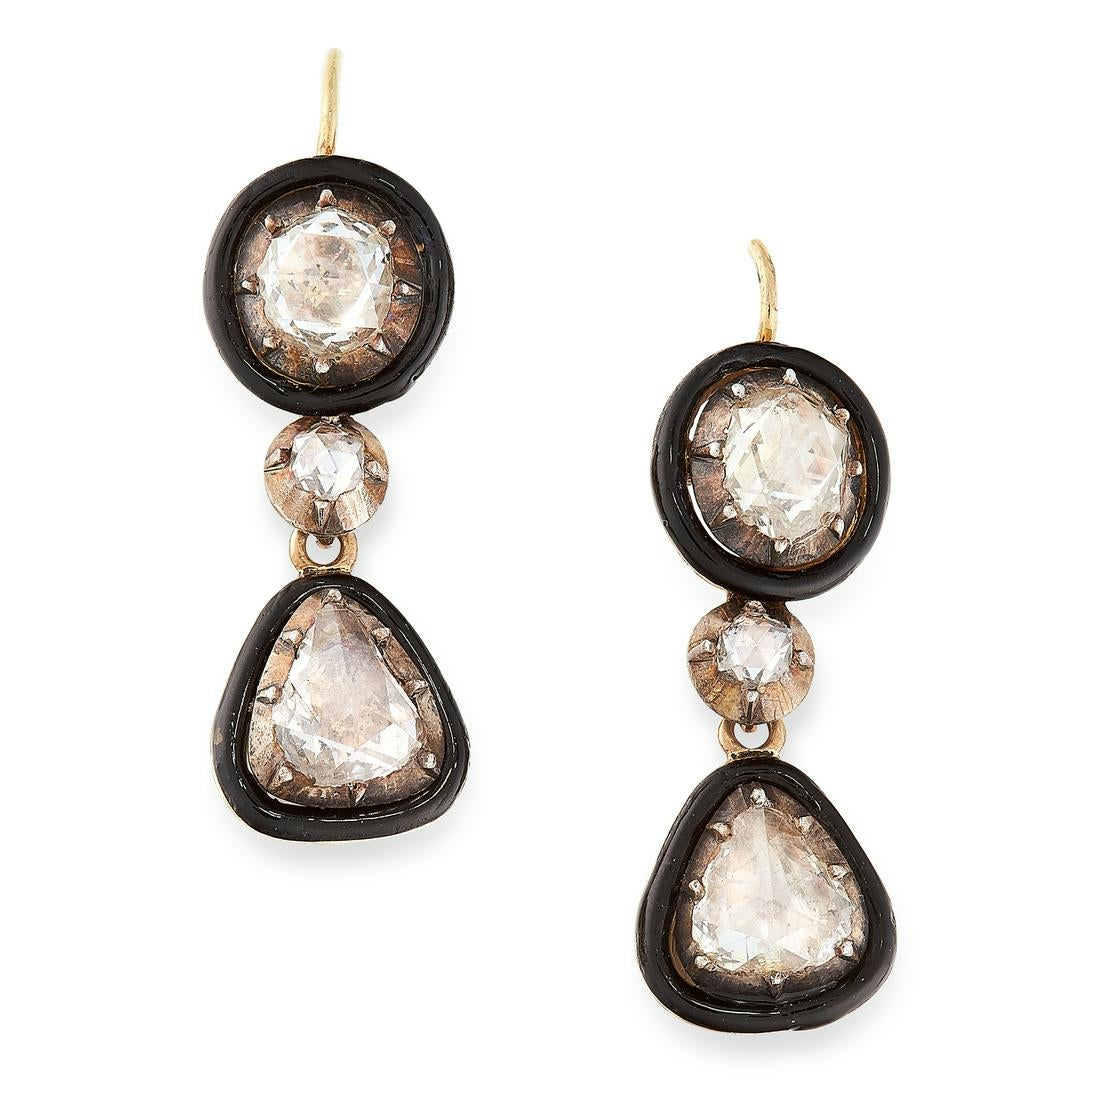 A PAIR OF ANTIQUE DIAMOND AND ENAMEL DROP EARRINGS in high carat yellow gold and silver, each set